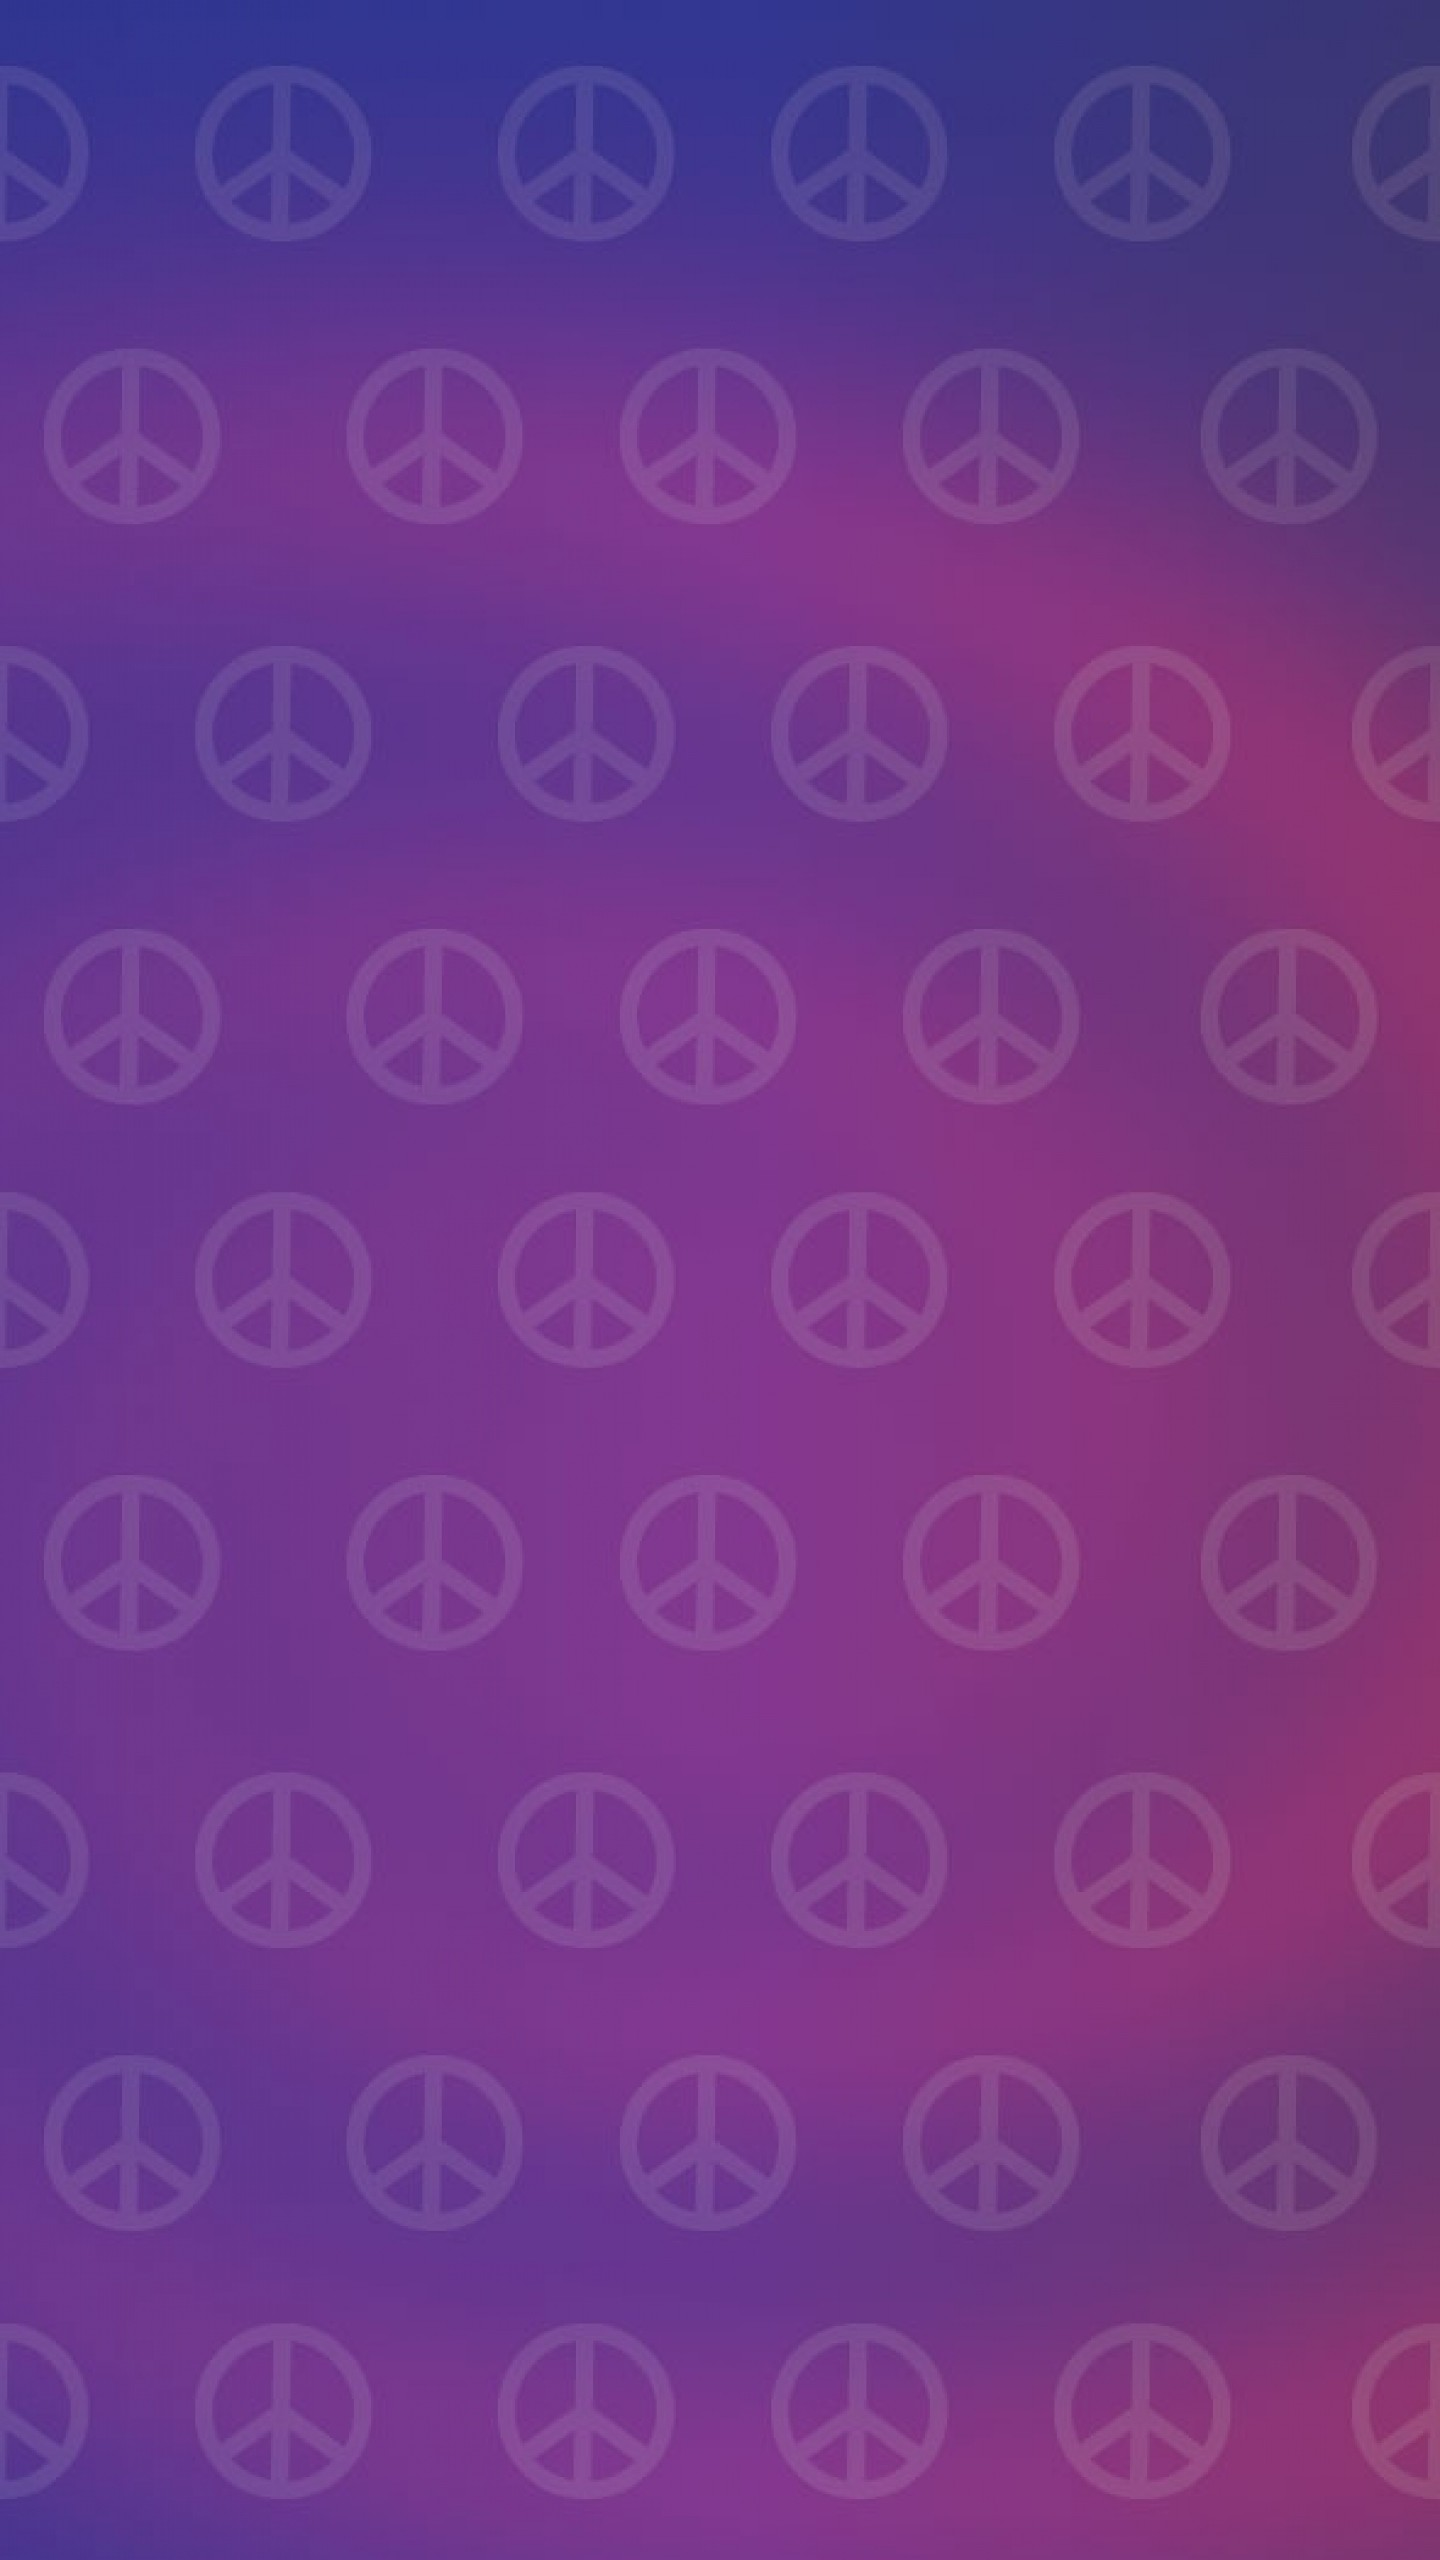 Peace signs backgrounds 46 images 1920x1200 1920x1200 wallpaper peace sign photo hd pic wpe007116 voltagebd Gallery